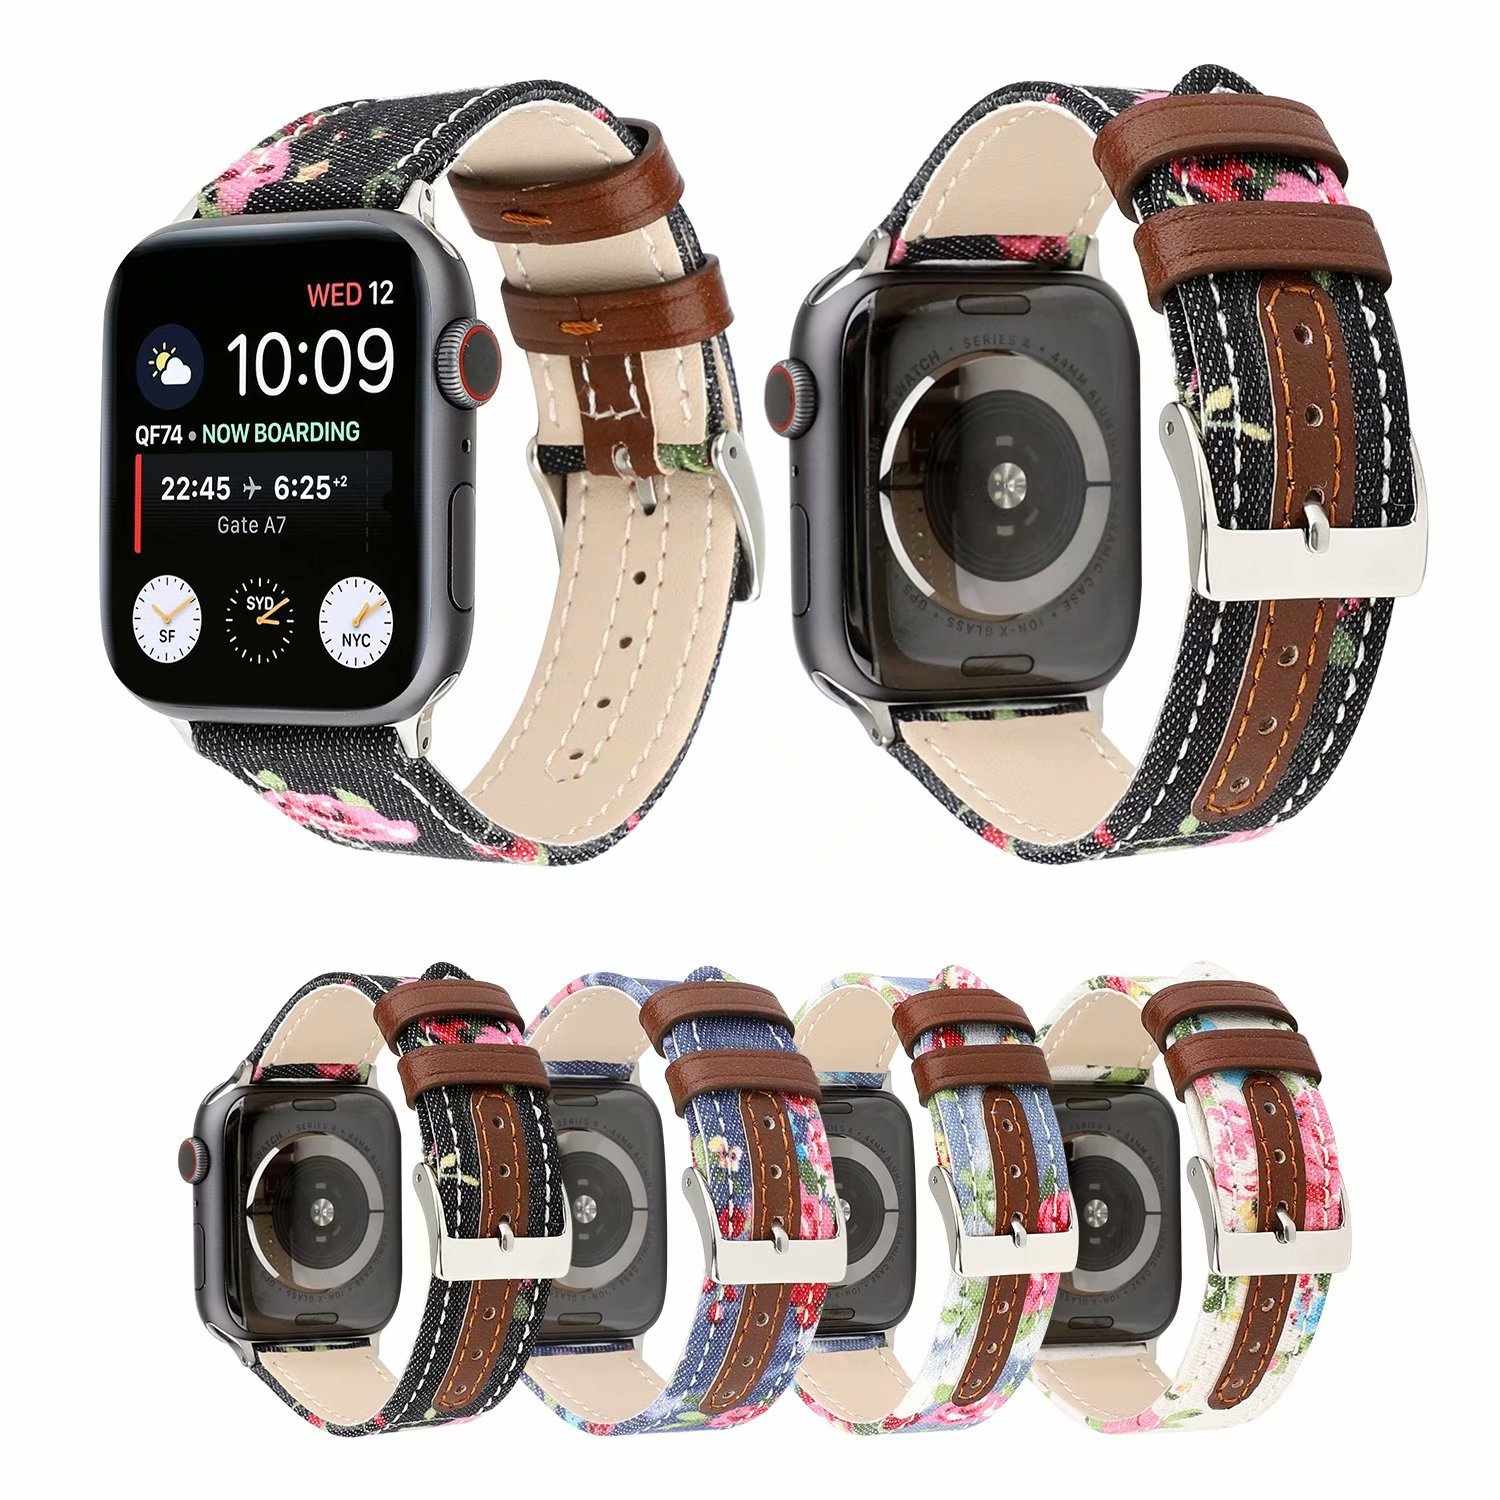 New Style Apple Watch Band Canvas Pattern Contrast Color Applicable APPLE Watch4 Genuine Leather Denim Decorative Pattern Watch